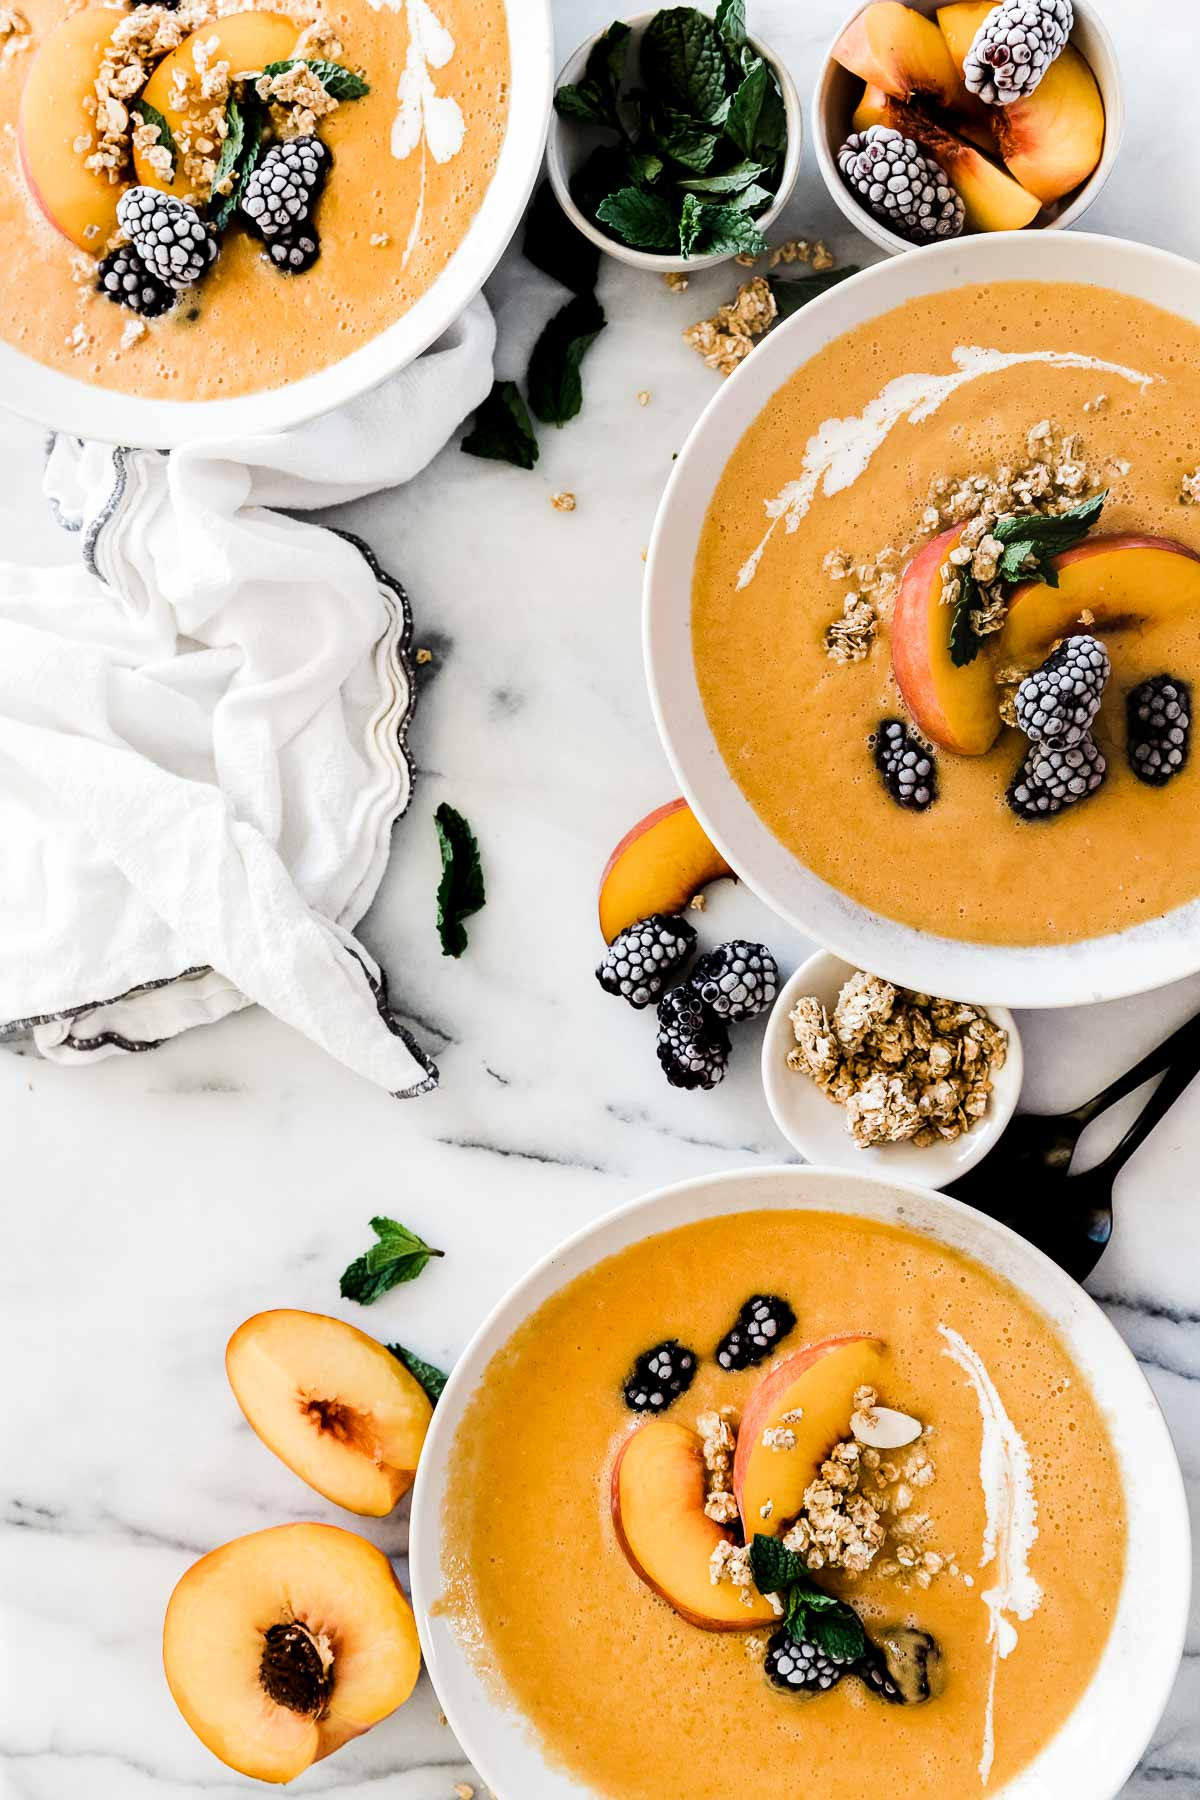 Three white bowls filled with peach chilled soup. The soup is garnished with peaches, berries, and mint.